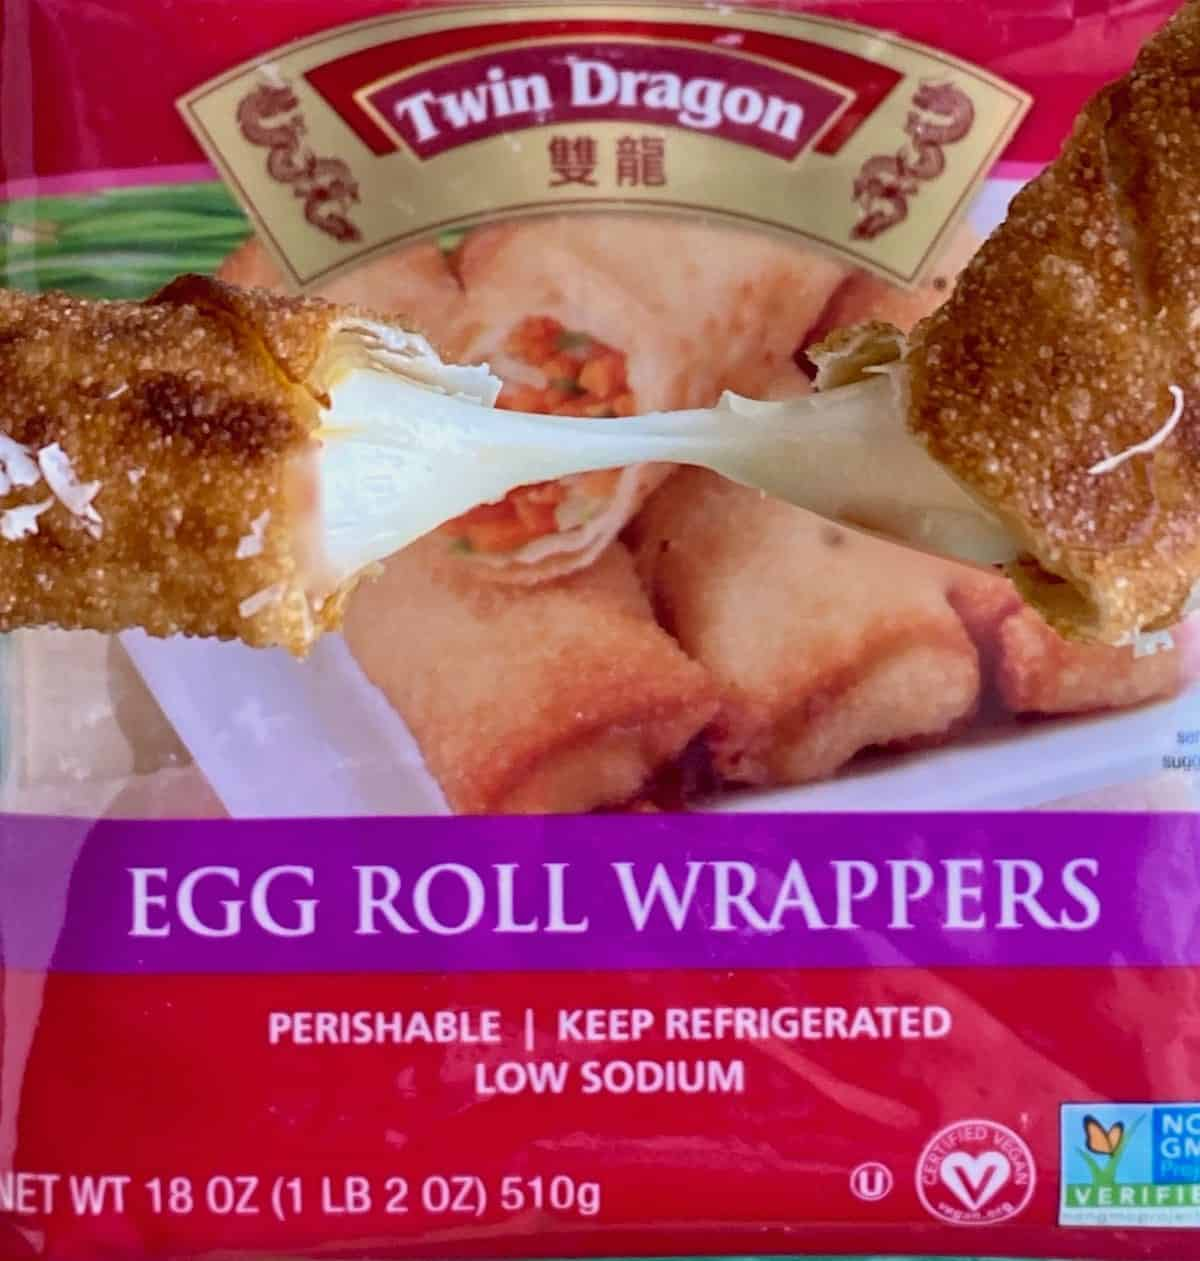 Twin Dragon egg roll wrapper package with egg roll cheese pull